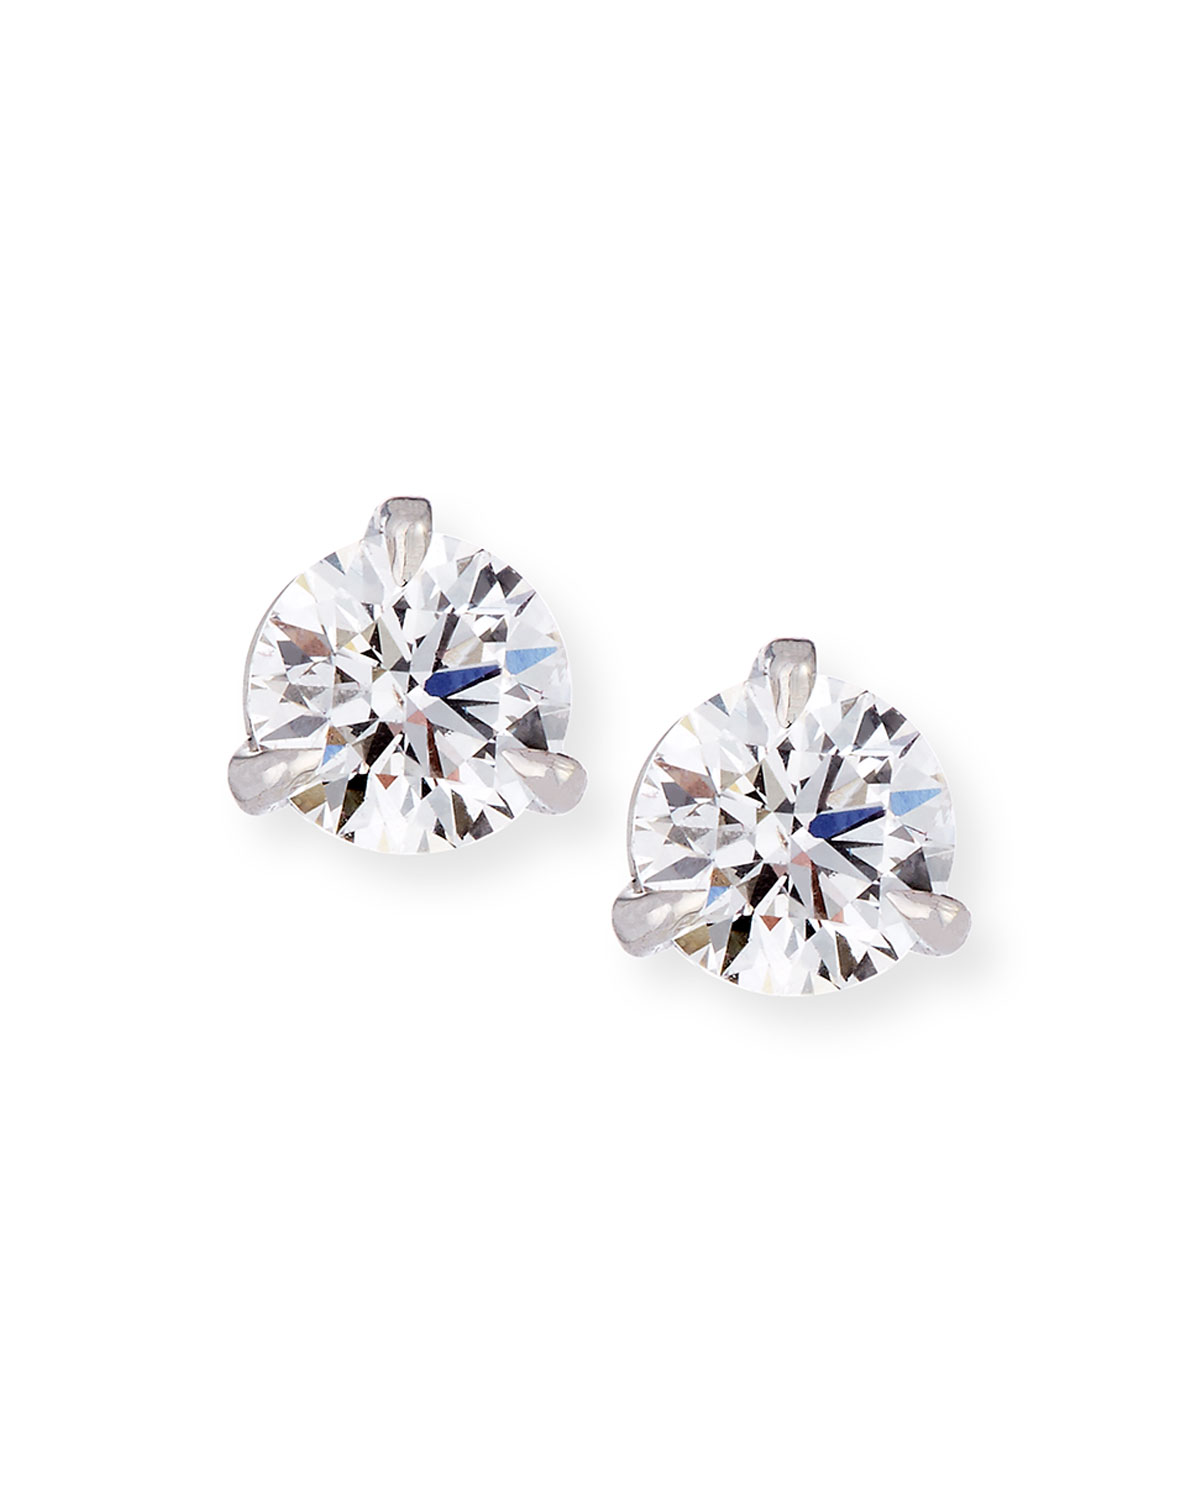 18k White Gold Martini Diamond Stud Earrings 0 51 Tcw